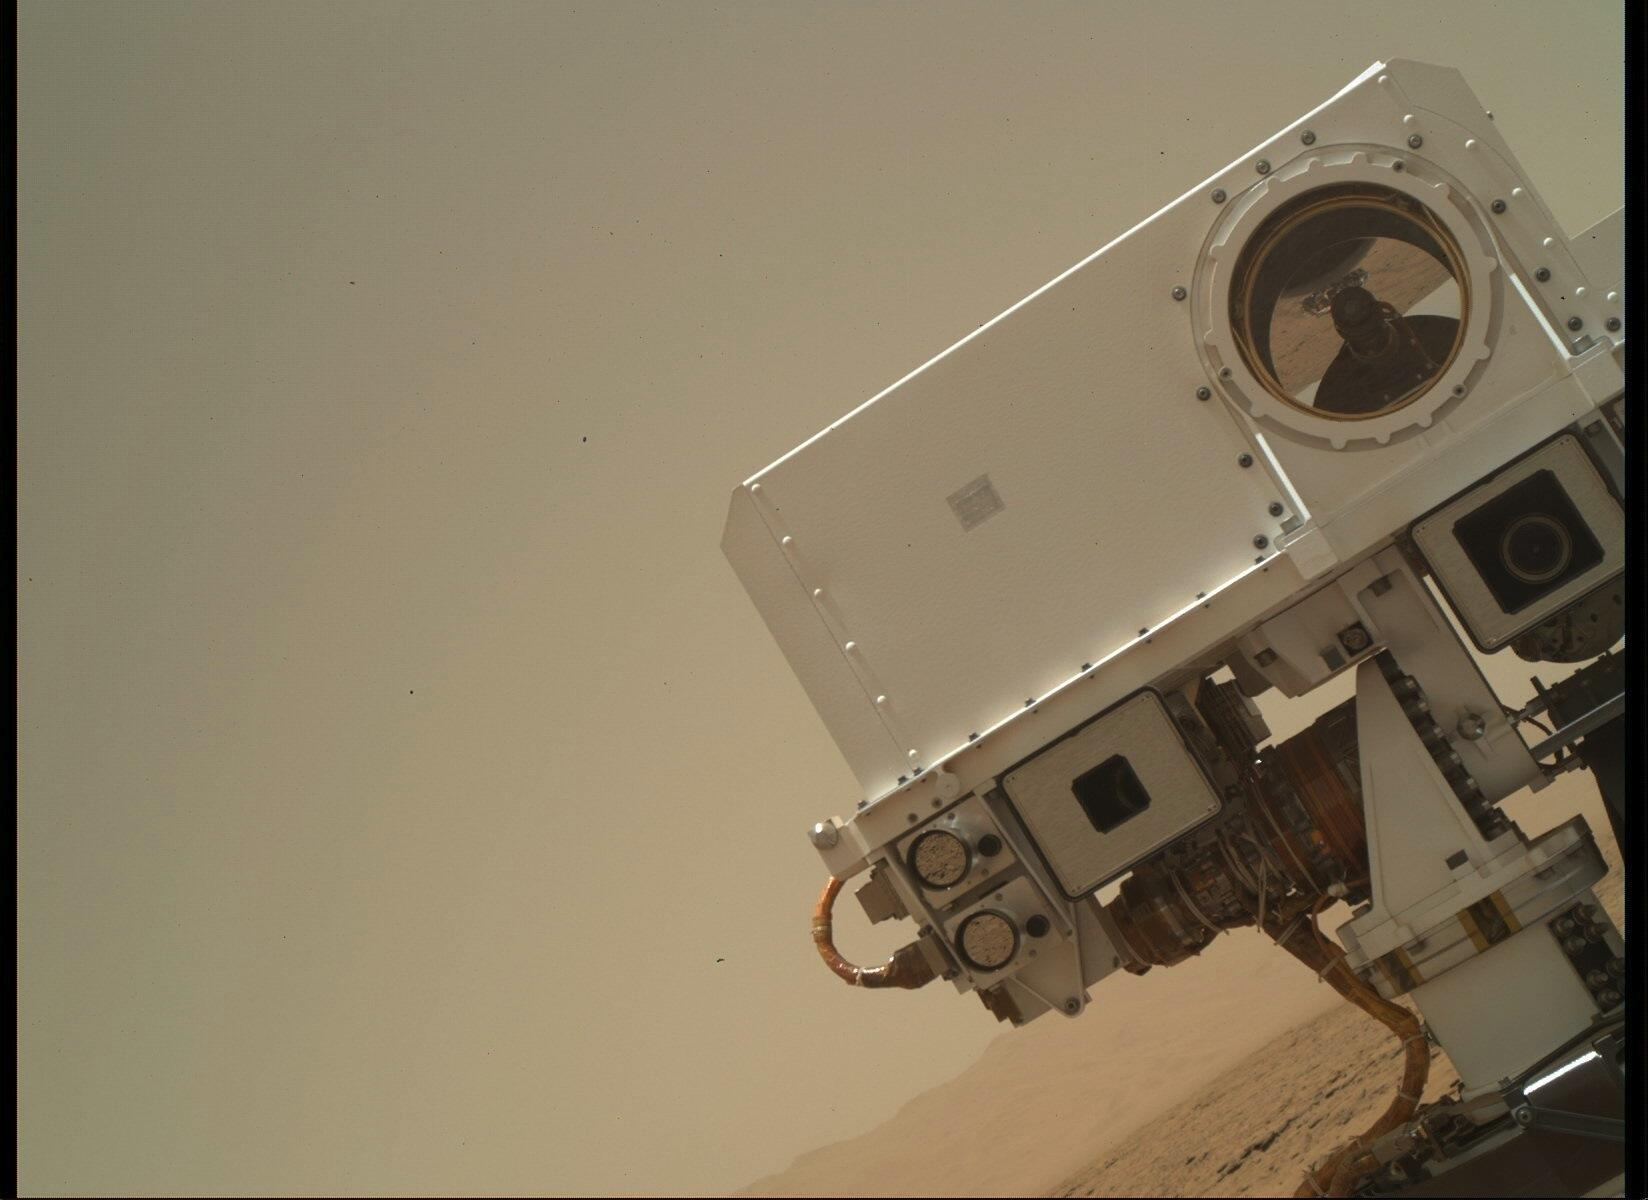 close up of the Mars Curiosity rover